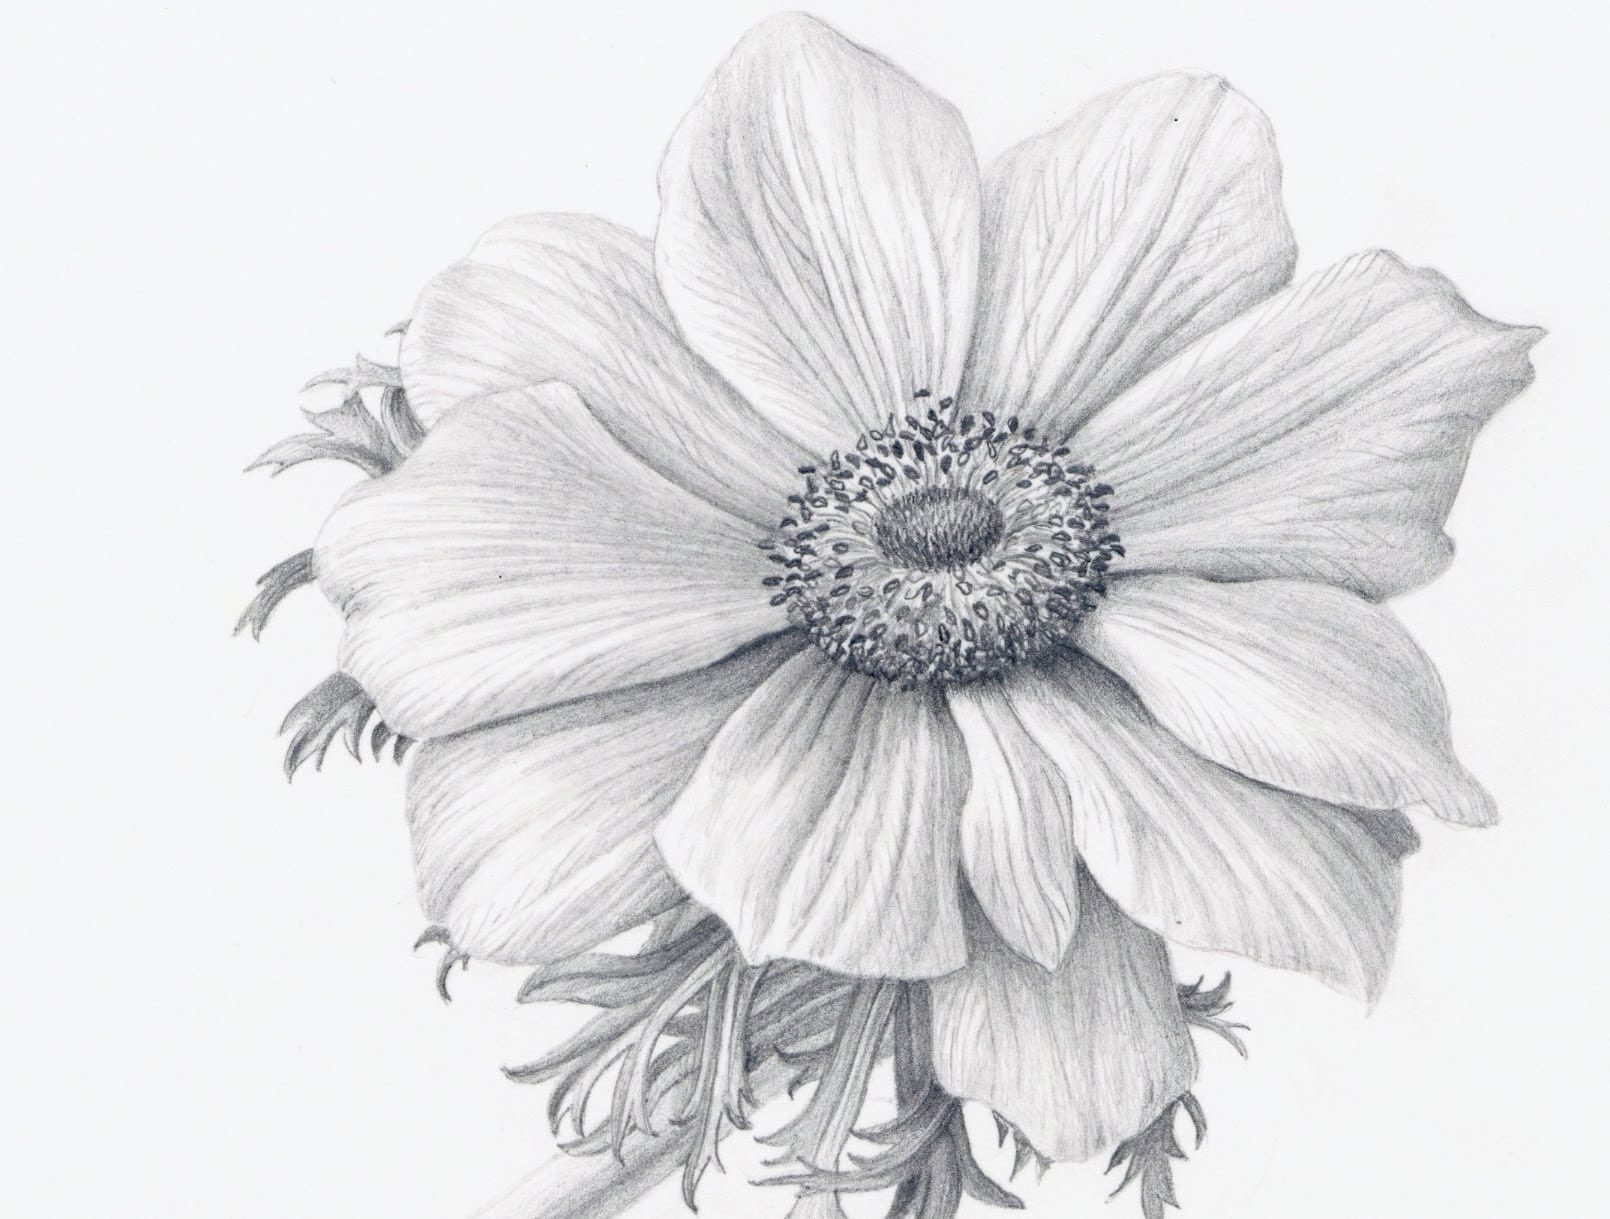 How To Draw Flowers Realistically Realistic Flower Drawing Realistic Drawings Pencil Drawings Of Flowers